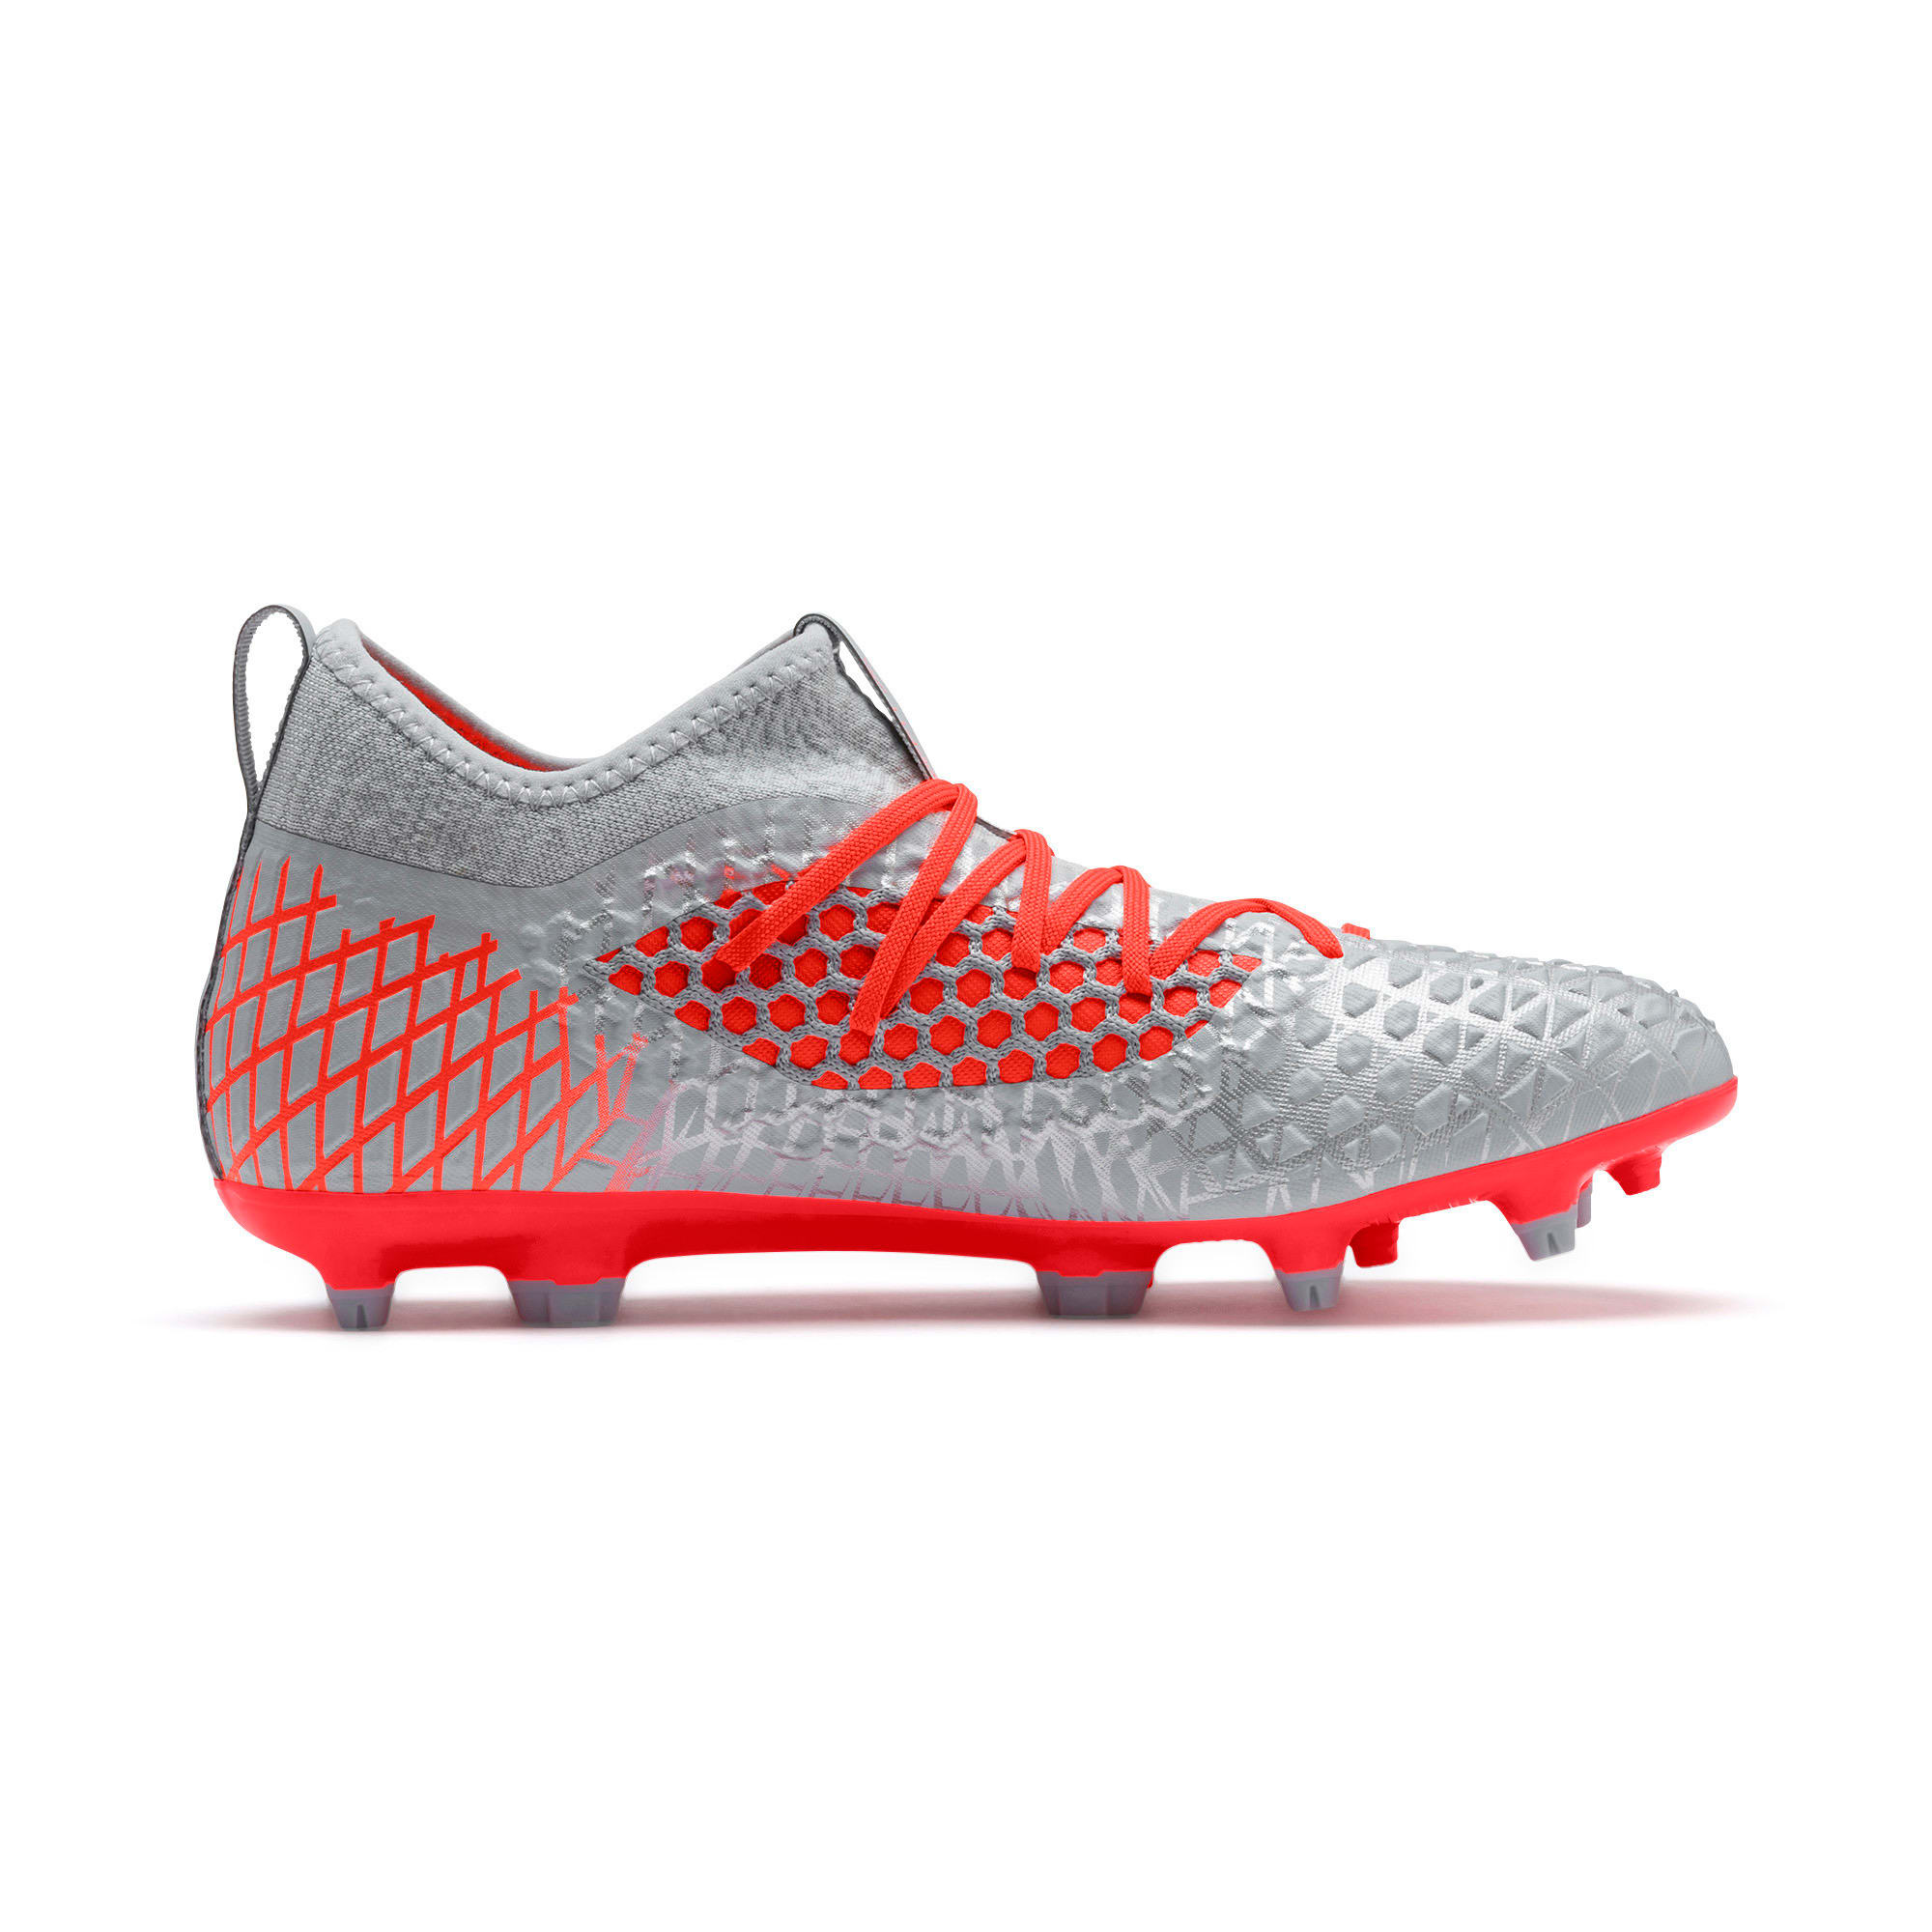 Thumbnail 6 of FUTURE 4.3 NETFIT FG/AG Men's Football Boots, Glacial Blue-Nrgy Red, medium